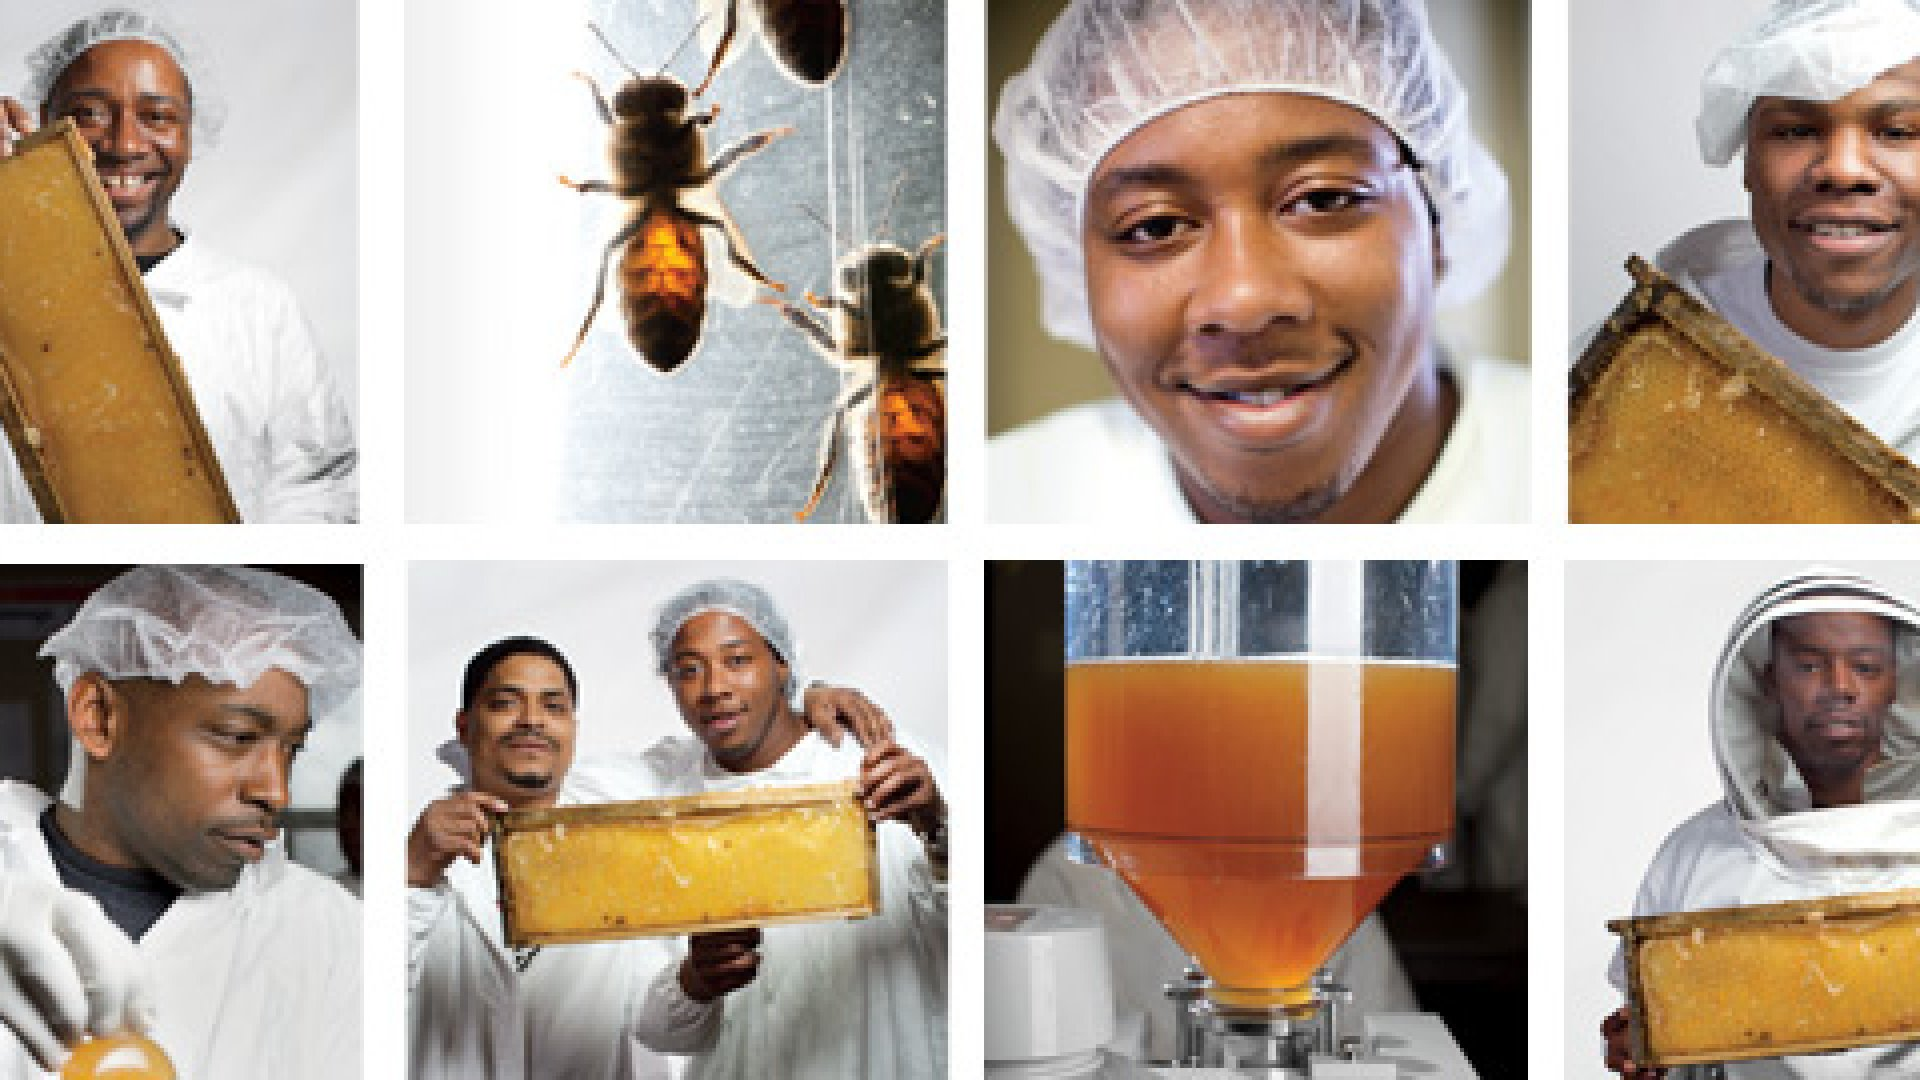 <b>Worker Bees </b>Among the jobs at Sweet Beginnings: harvesting honey from hive frames, to make products like shower gel